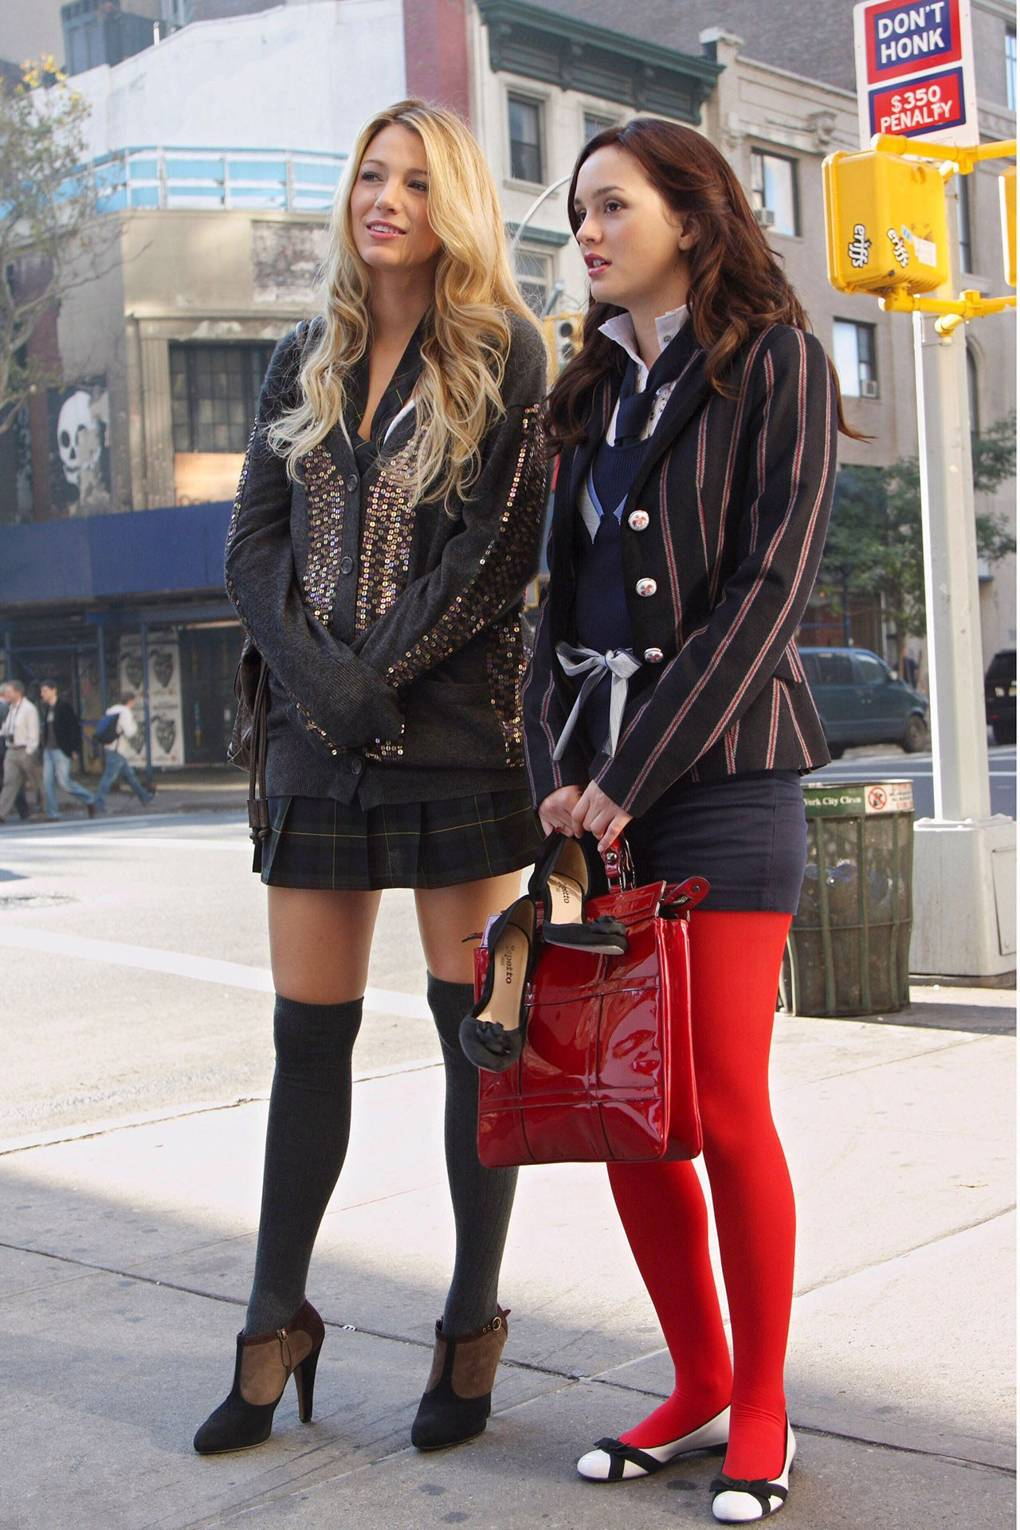 57cf8ad8e Blake Lively Serena van der Woodsen Gossip Girl Style Outfits ...